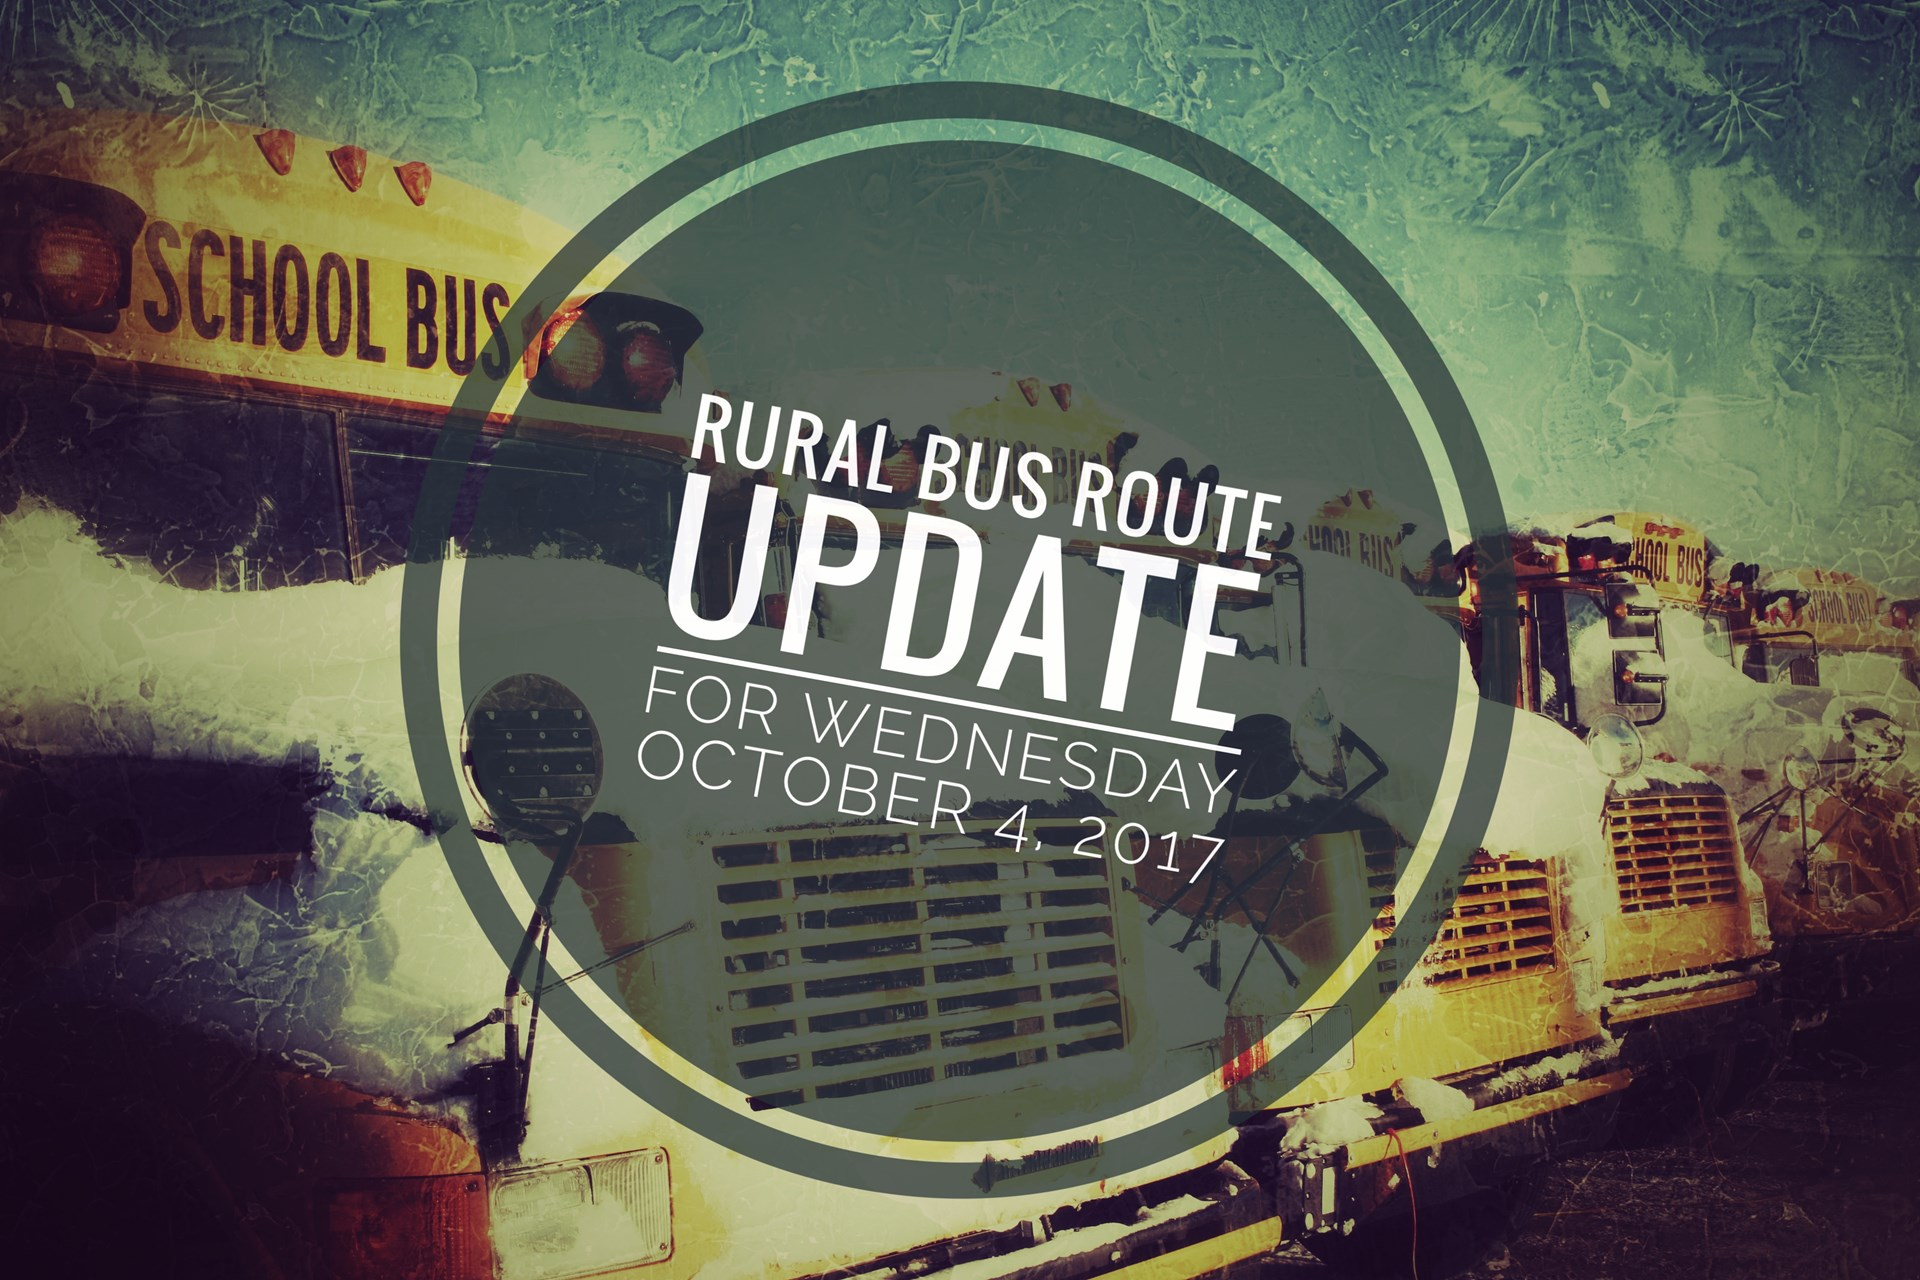 Rural Bus Route Update Oct 4-17.jpg